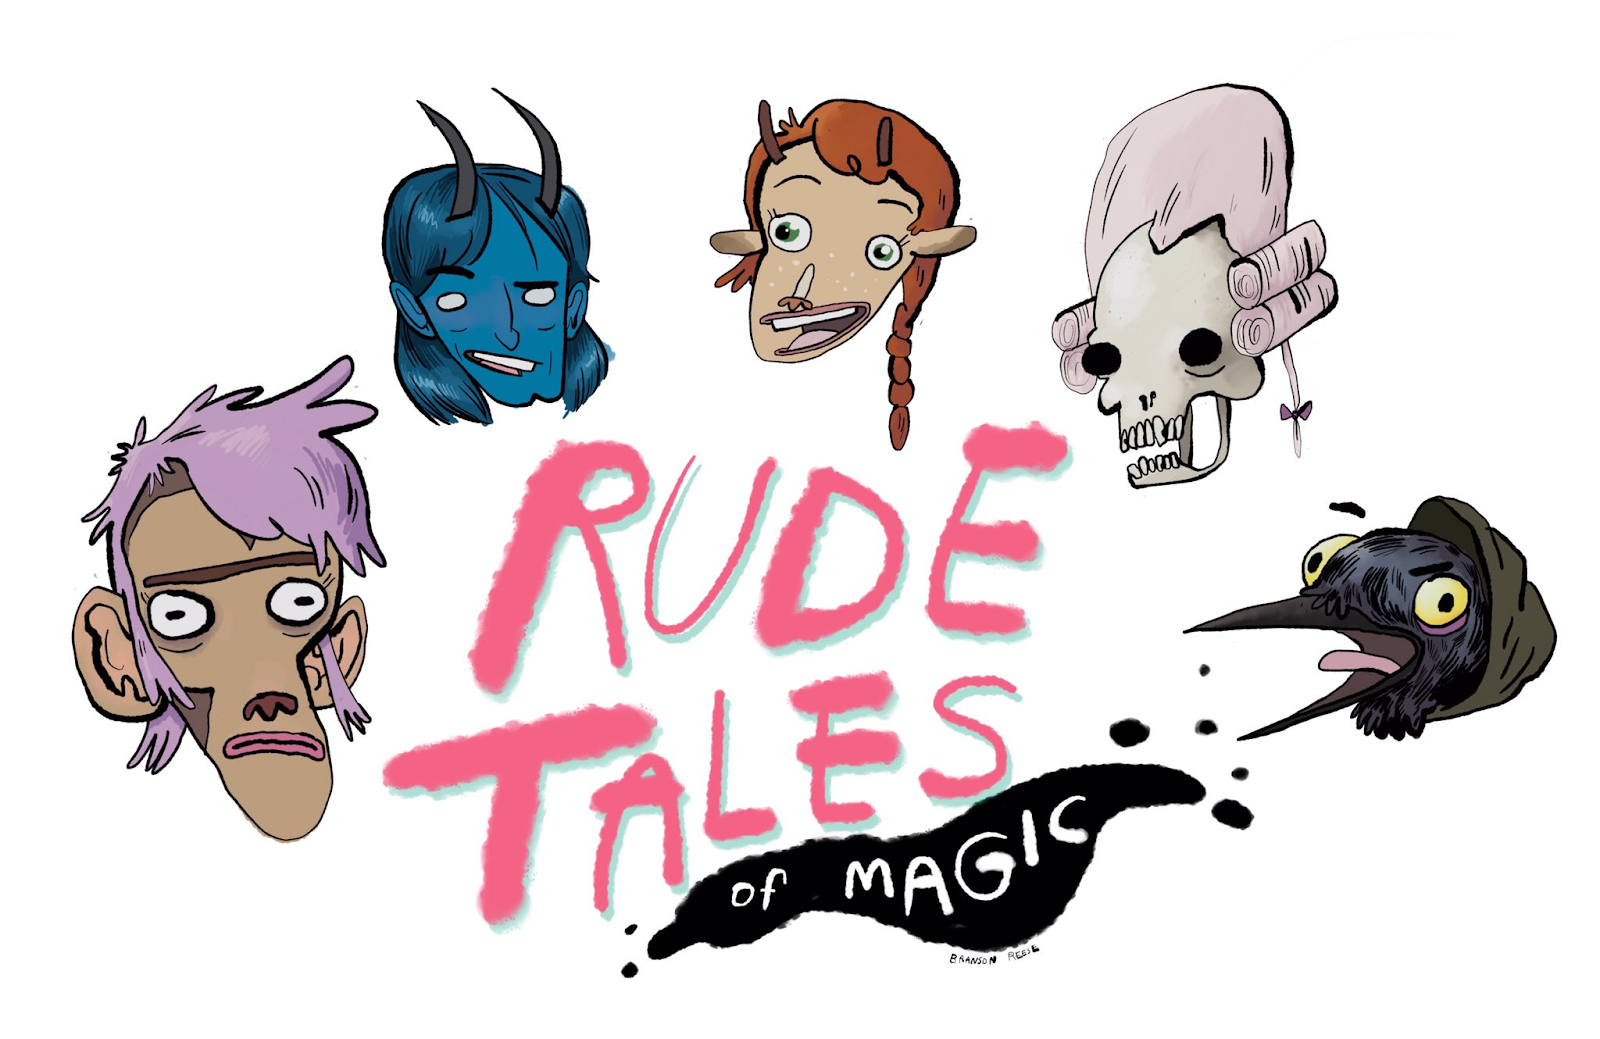 """Podcast artwork for """"Rude Tales of Magic"""""""